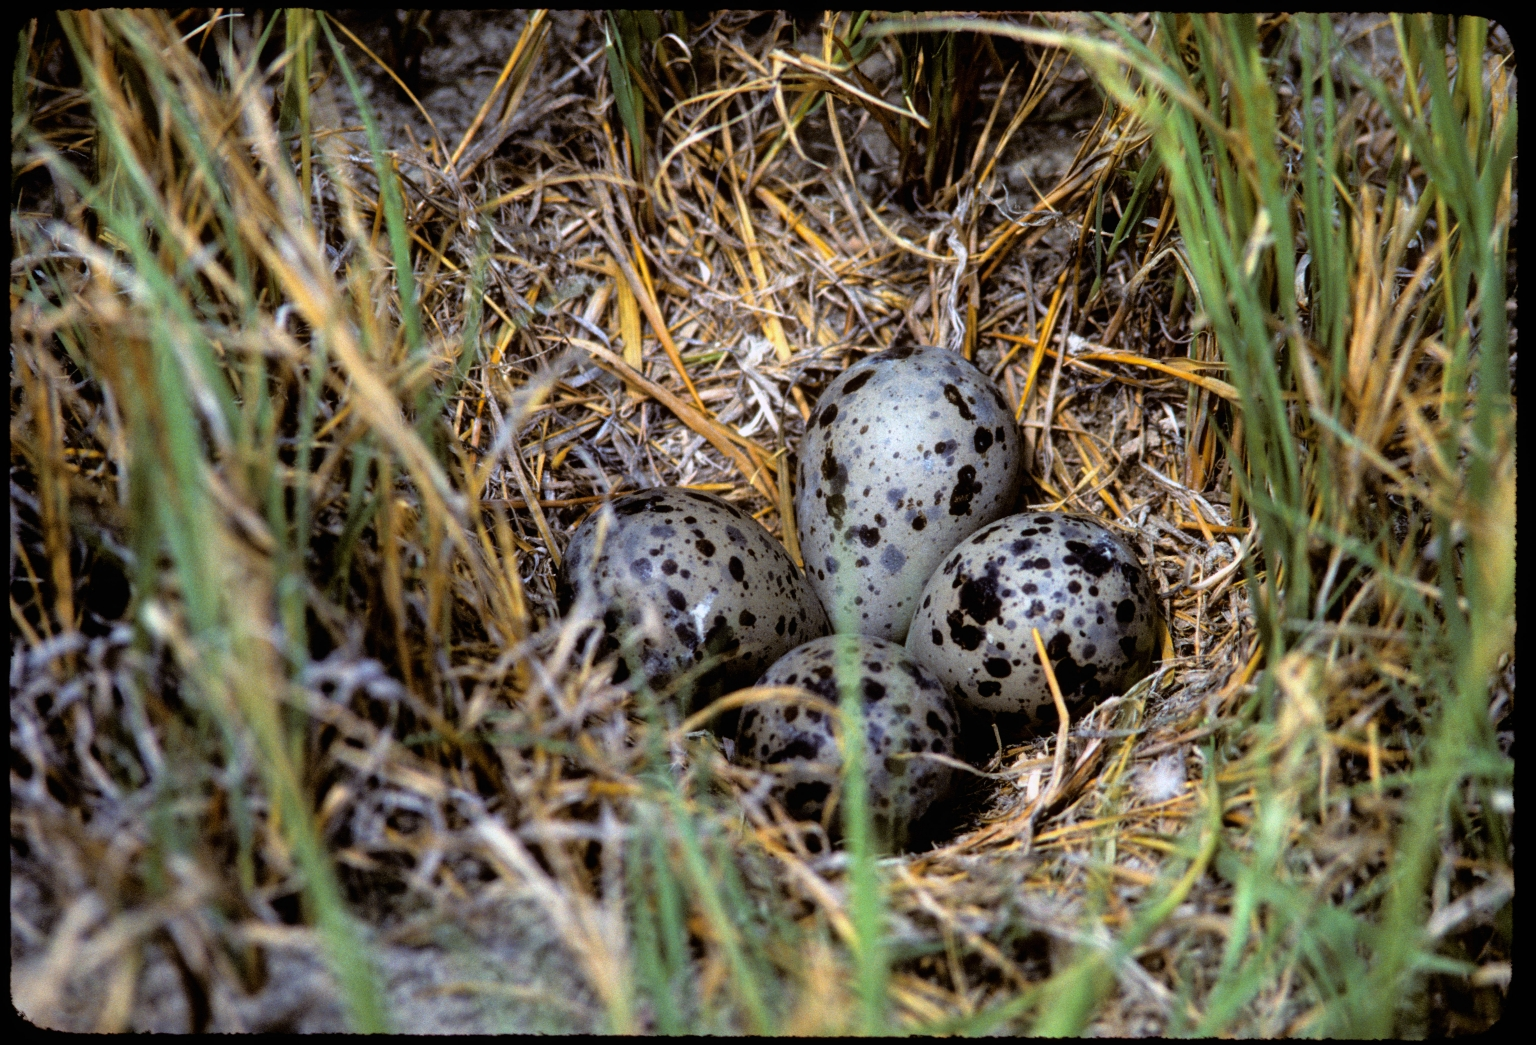 Willet nest with eggs